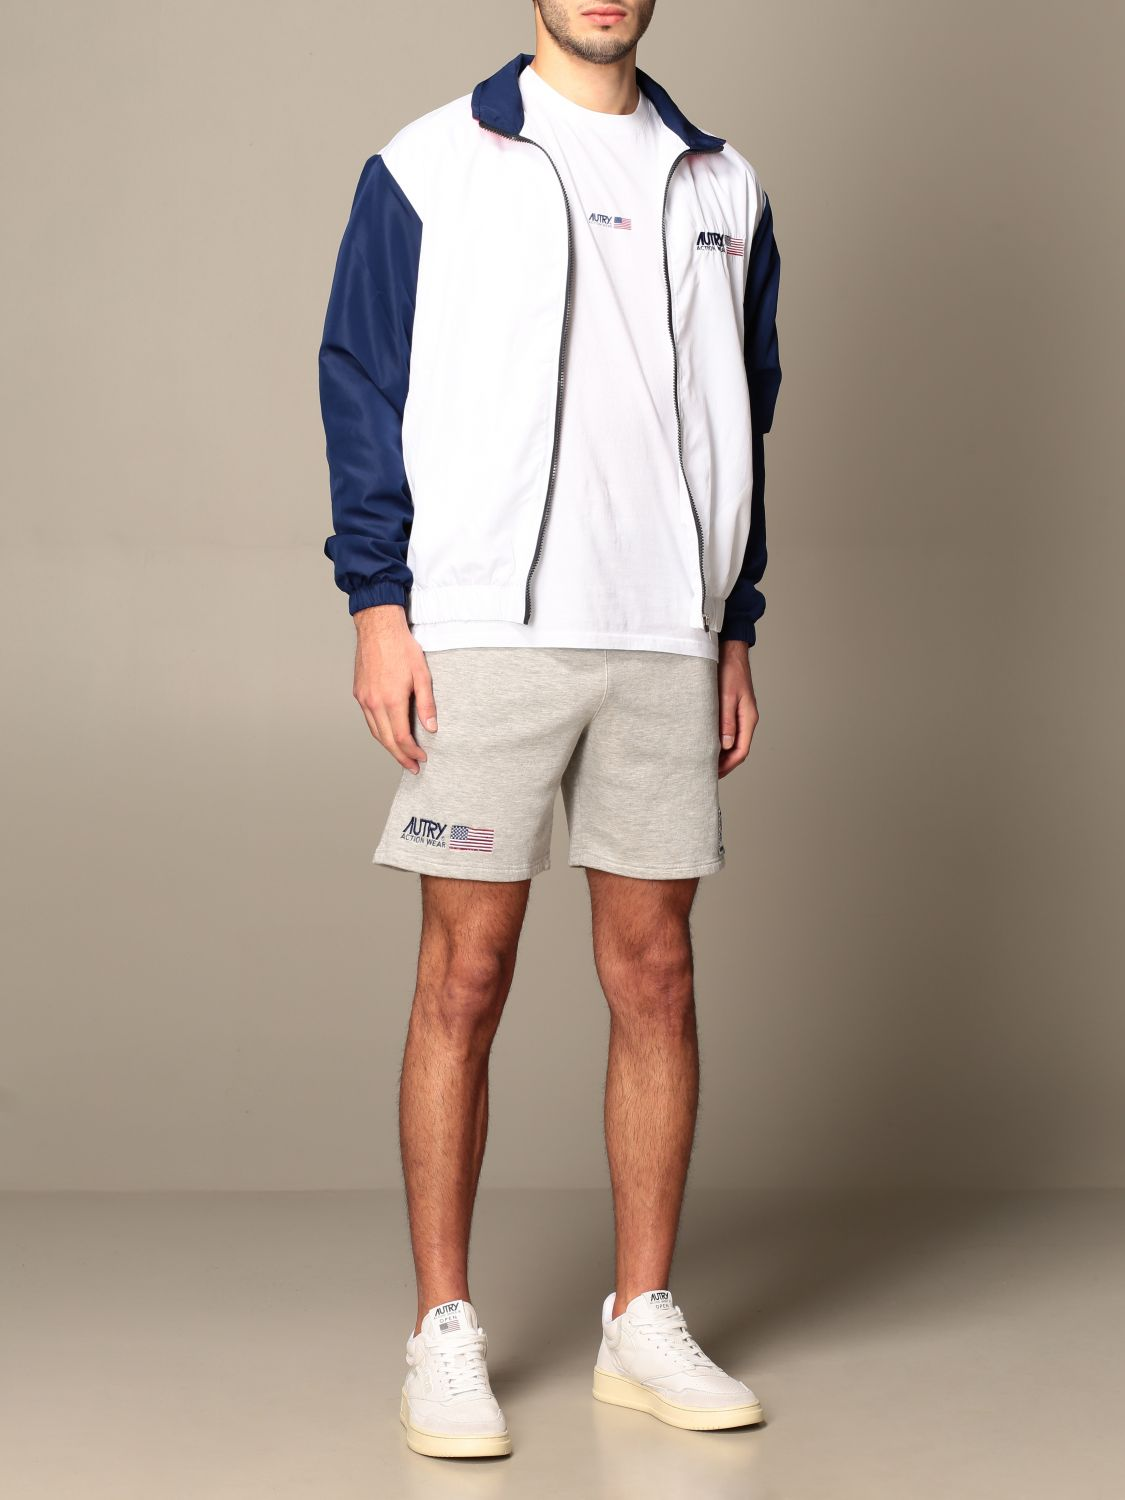 Giacca Autry: Giacca con zip Capsule Open Autry in cotone bianco 2